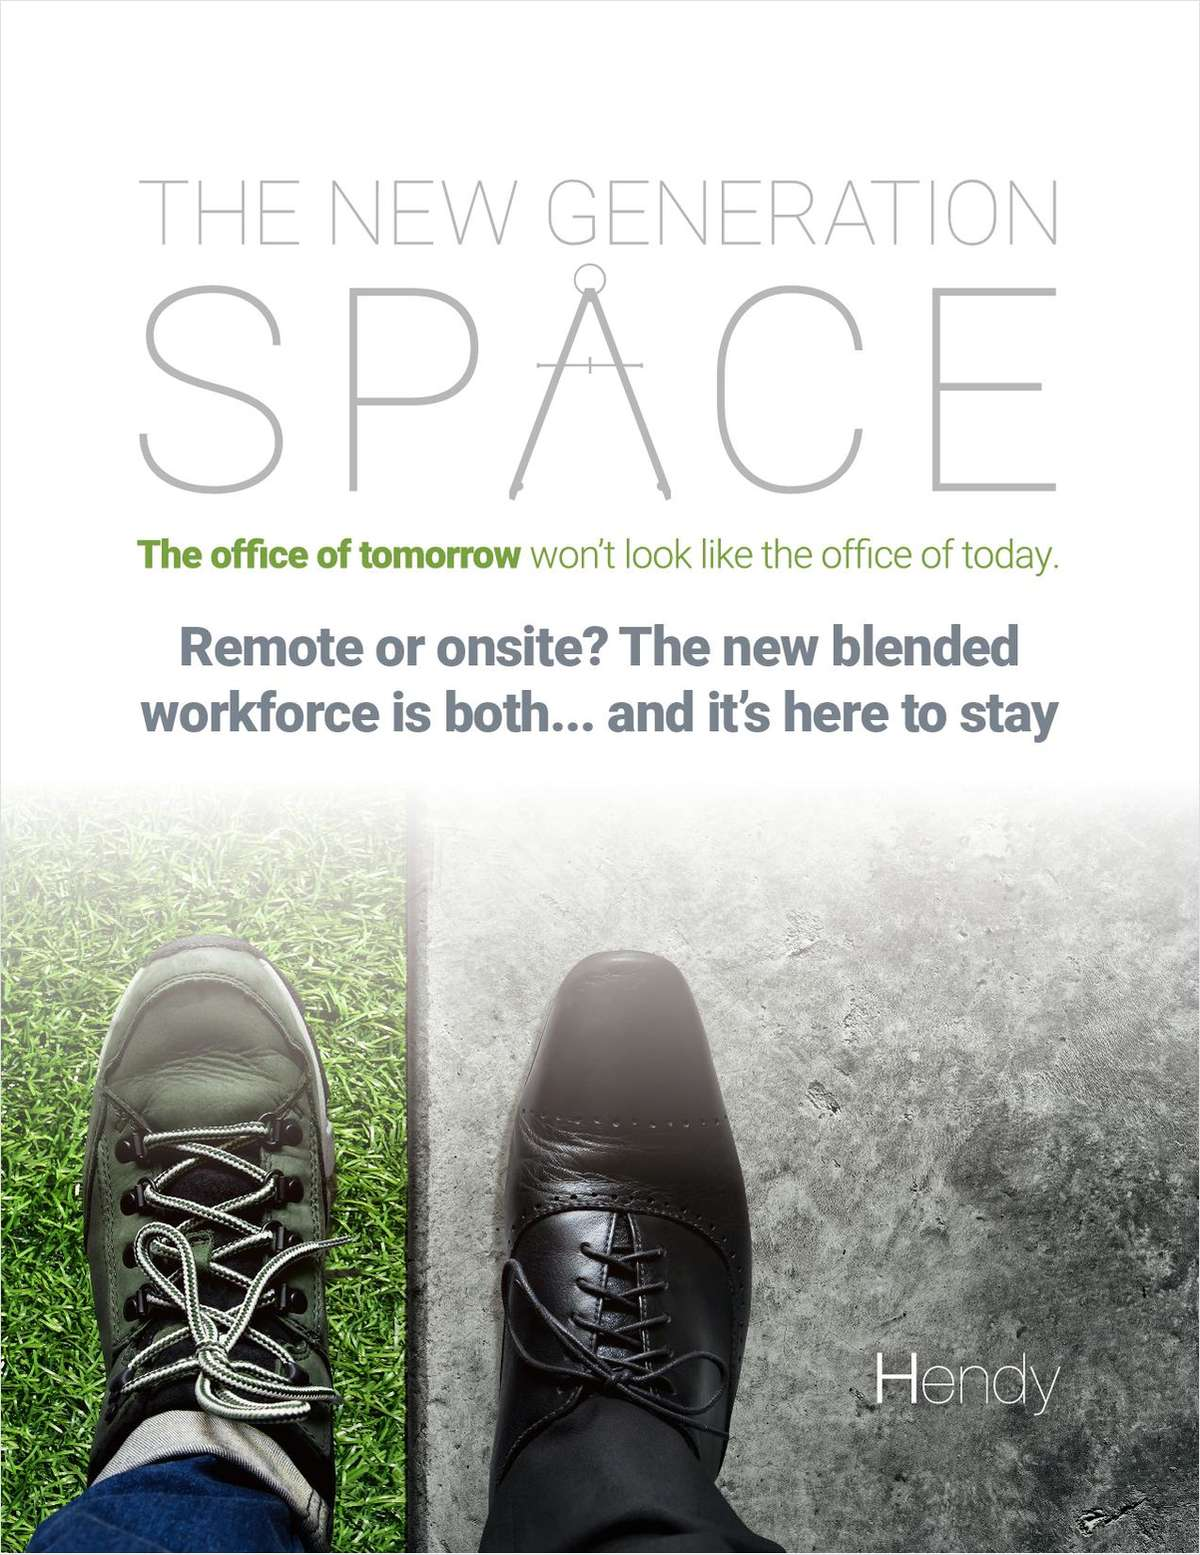 Remote or Onsite? The New Blended Workforce is Both and It's Here to Stay